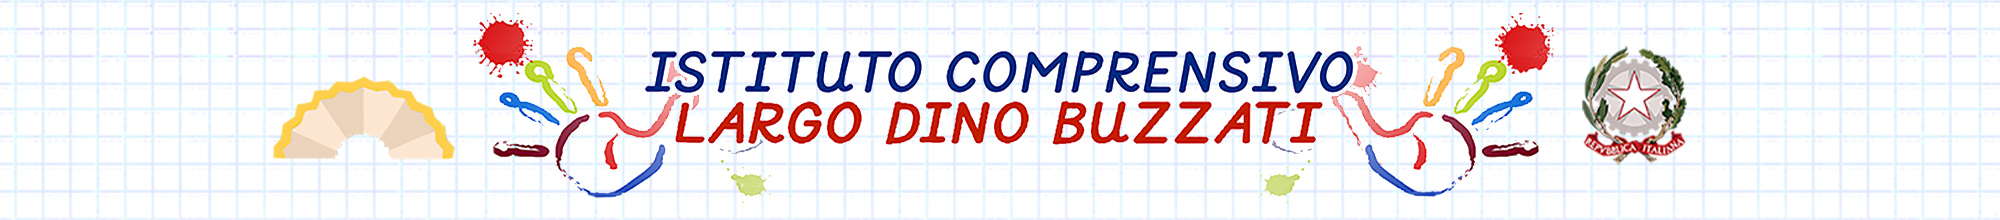 header ic dino buzzati